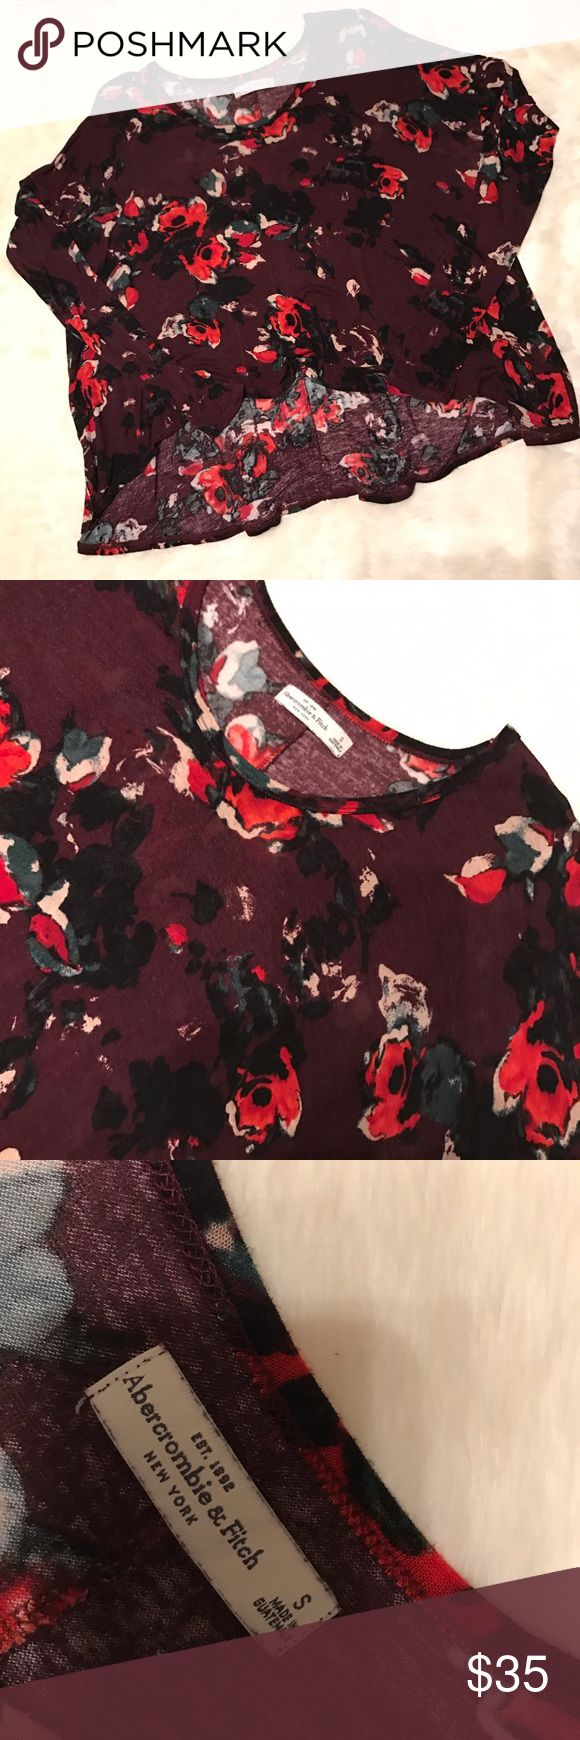 Floral Flowy High-Low Top from Abercrombie & Fitch Floral high-low style top from Abercrombie. Lays kind of weird due to it being thin, but it's super cute on. Great condition. Size small. Make an offer! Abercrombie & Fitch Tops Blouses